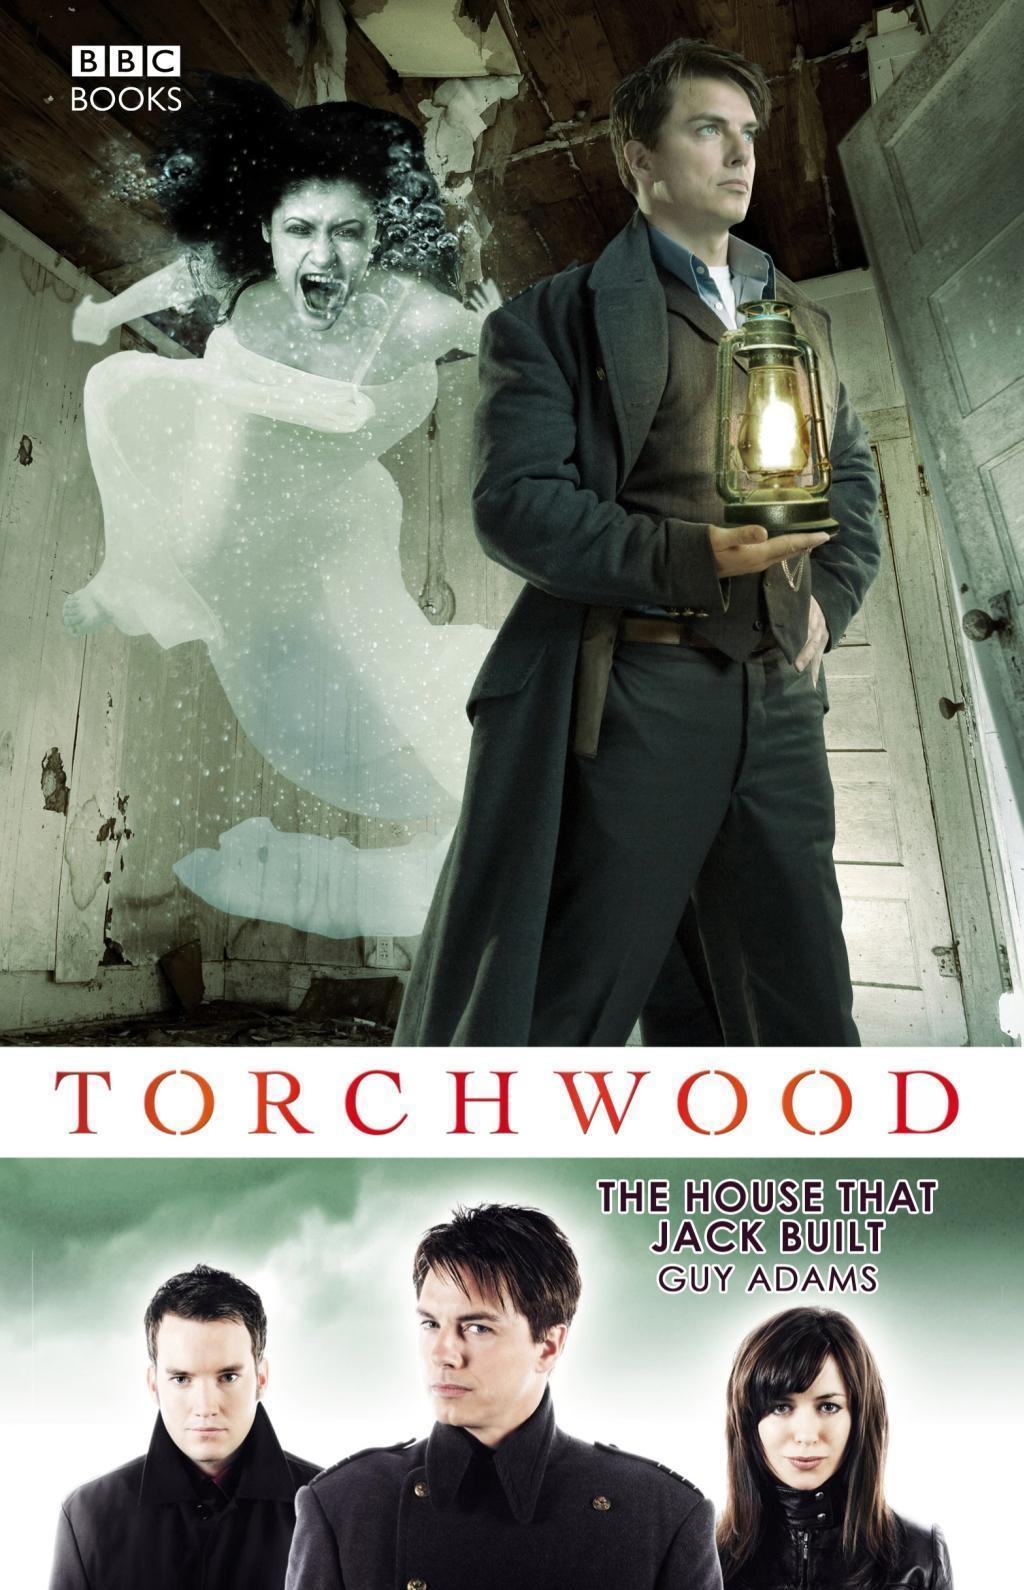 Torchwood: The House That Jack Built